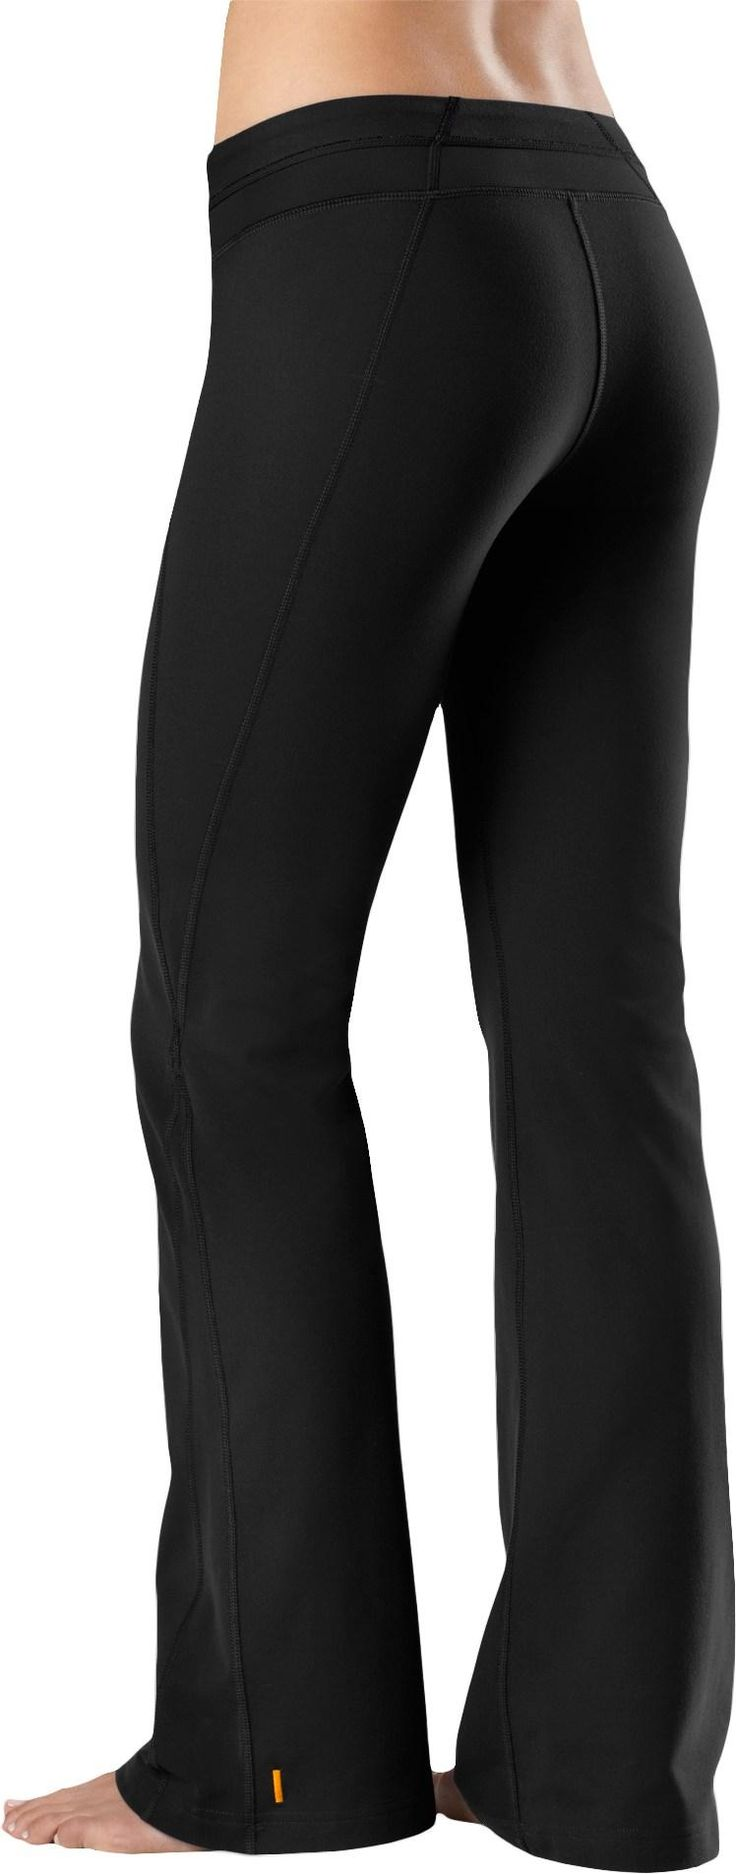 For those who love their yoga pants, try these on for size. The lucy Hatha pants in short sizes.